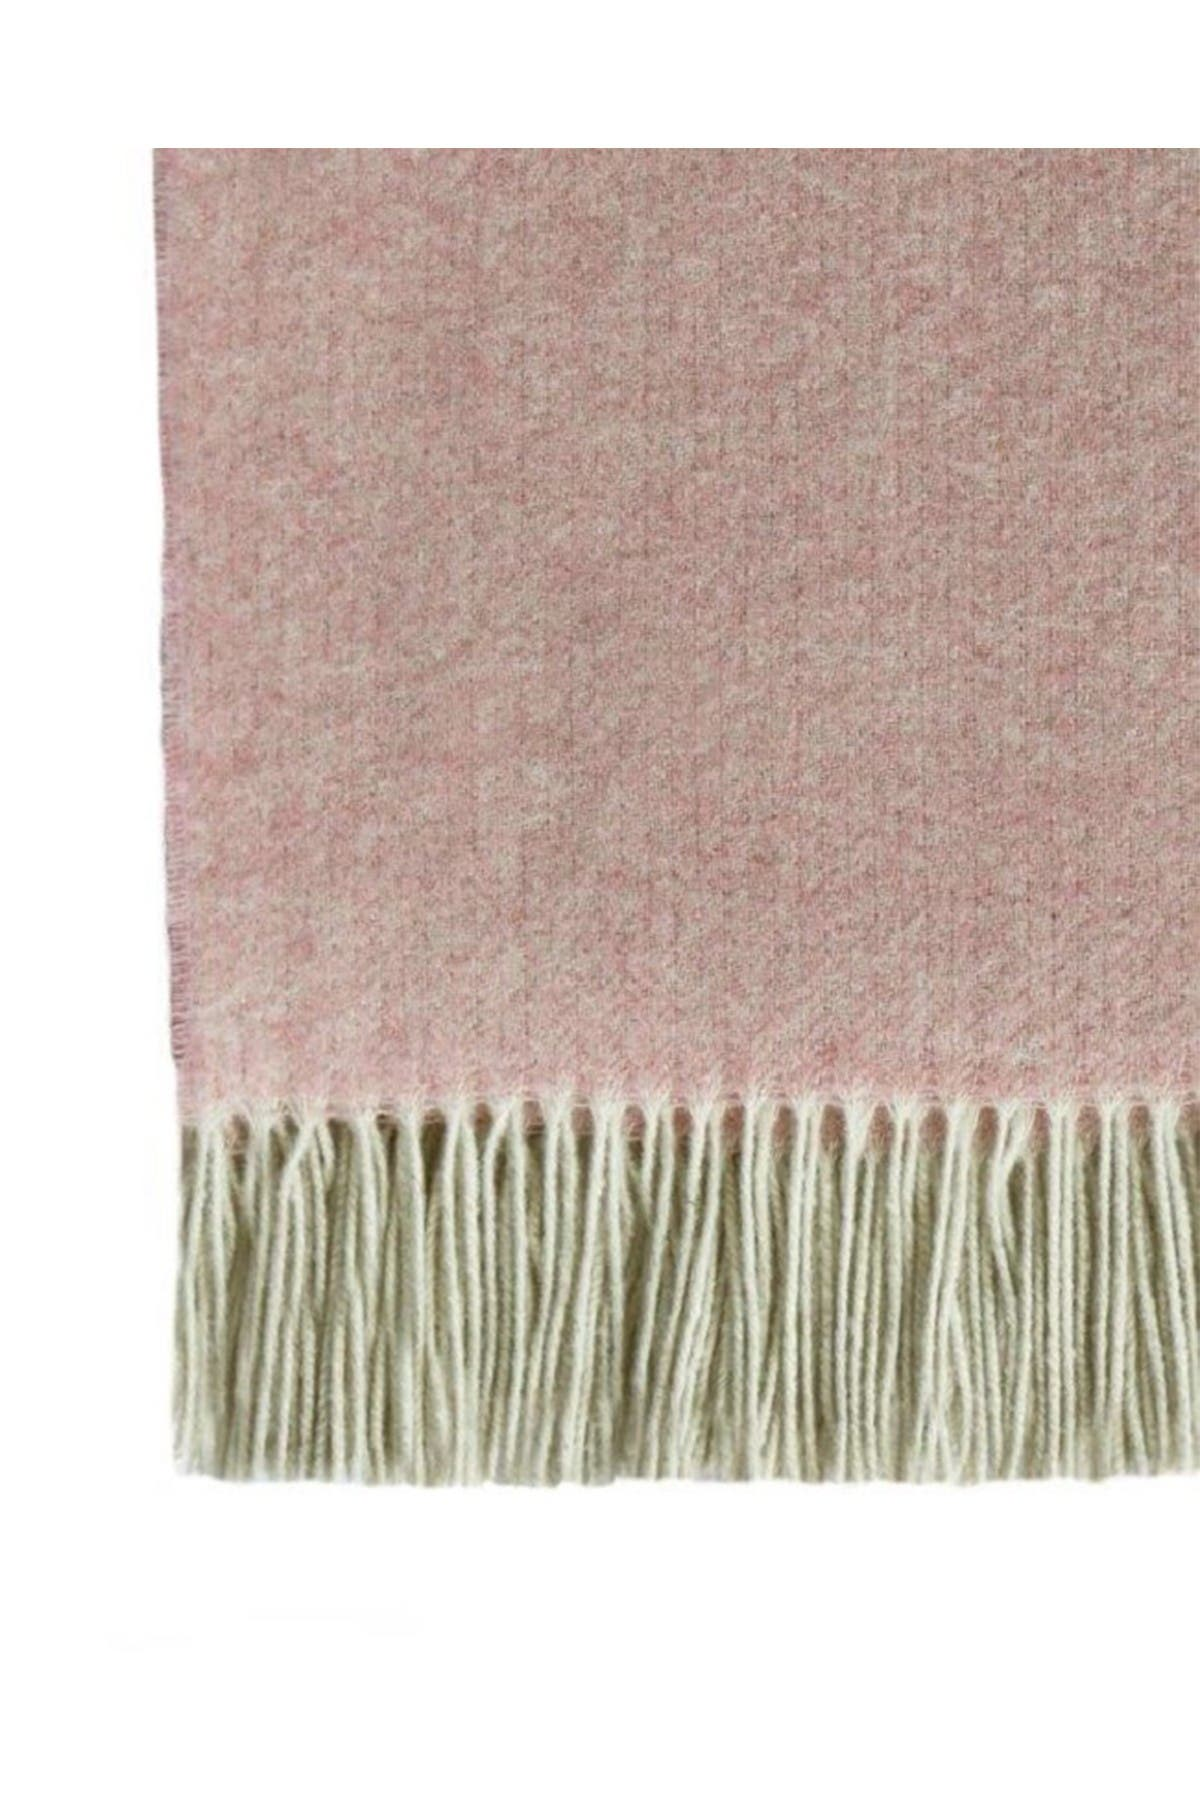 Image of Melange Home Italian Wool Blend Throw - Pink